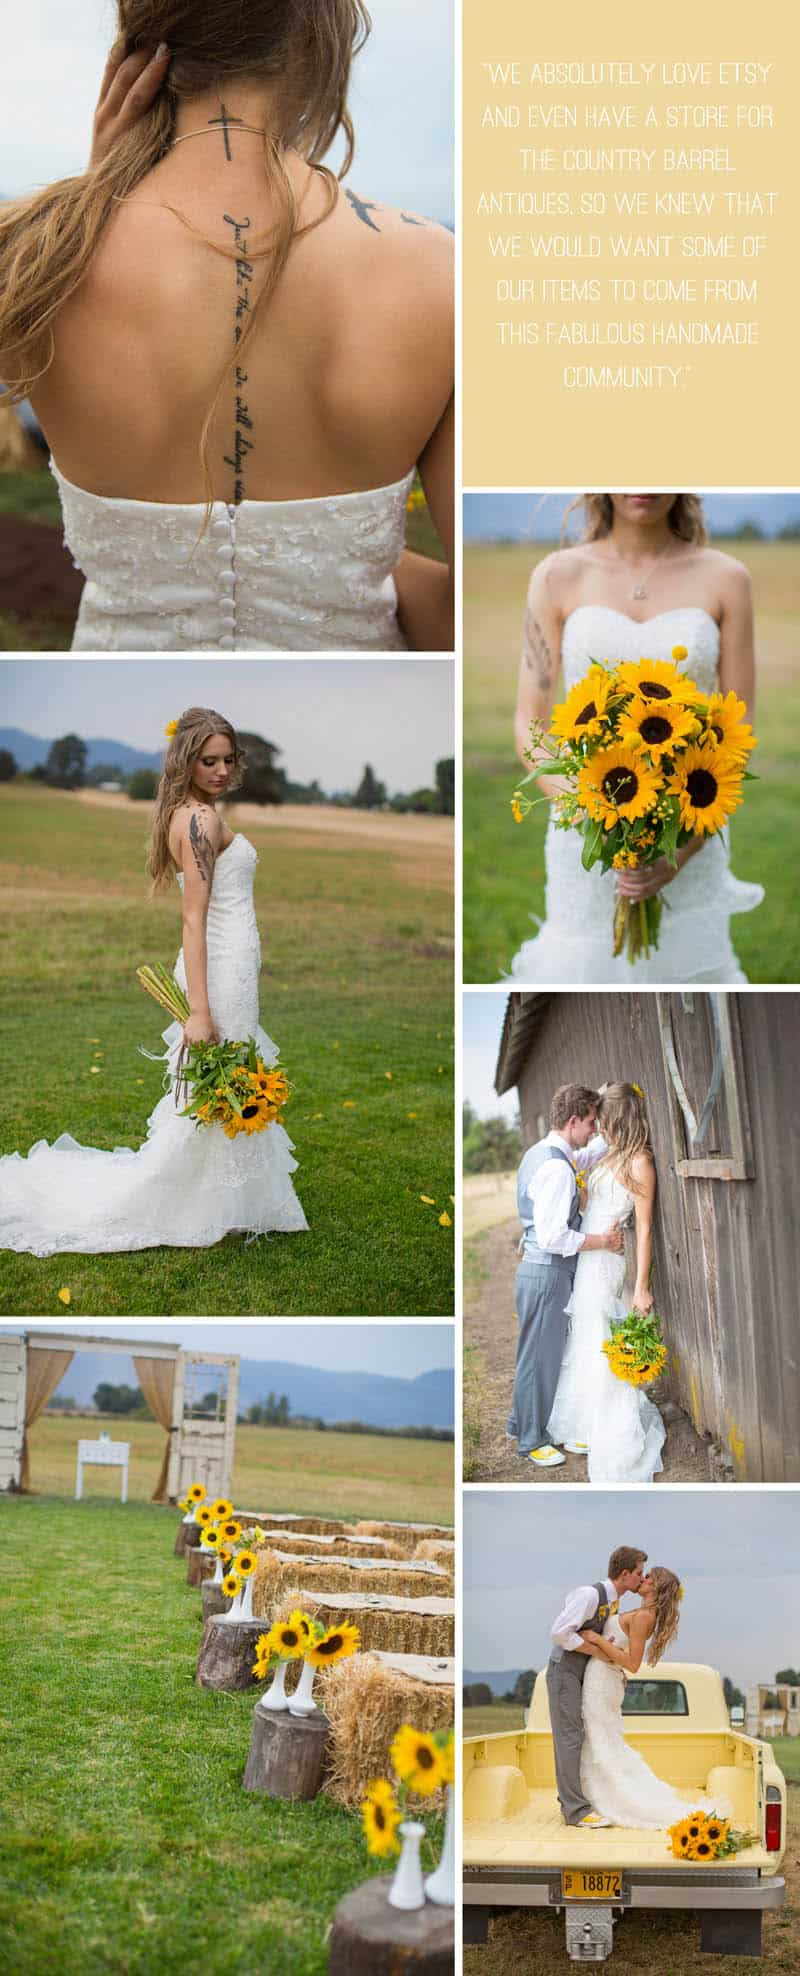 A Rustic Country Wedding for Just £1500 3